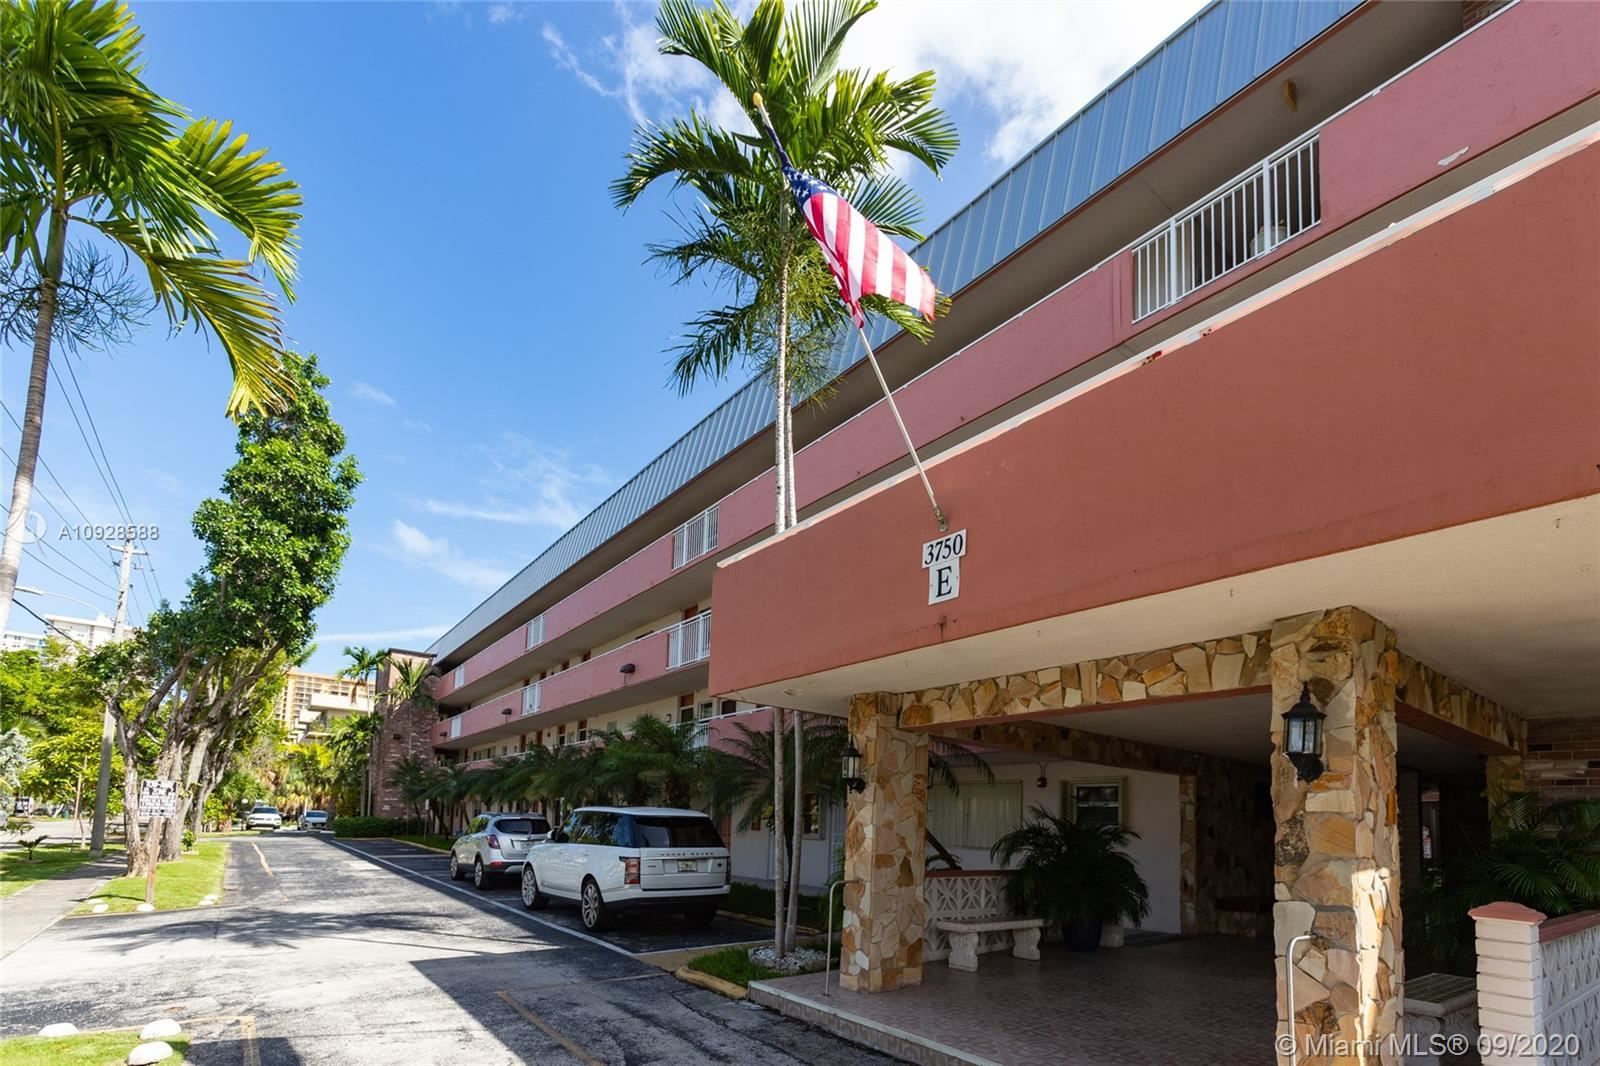 3750 NE 170 ST #300, North Miami Beach, FL 33160 - #: A10928588